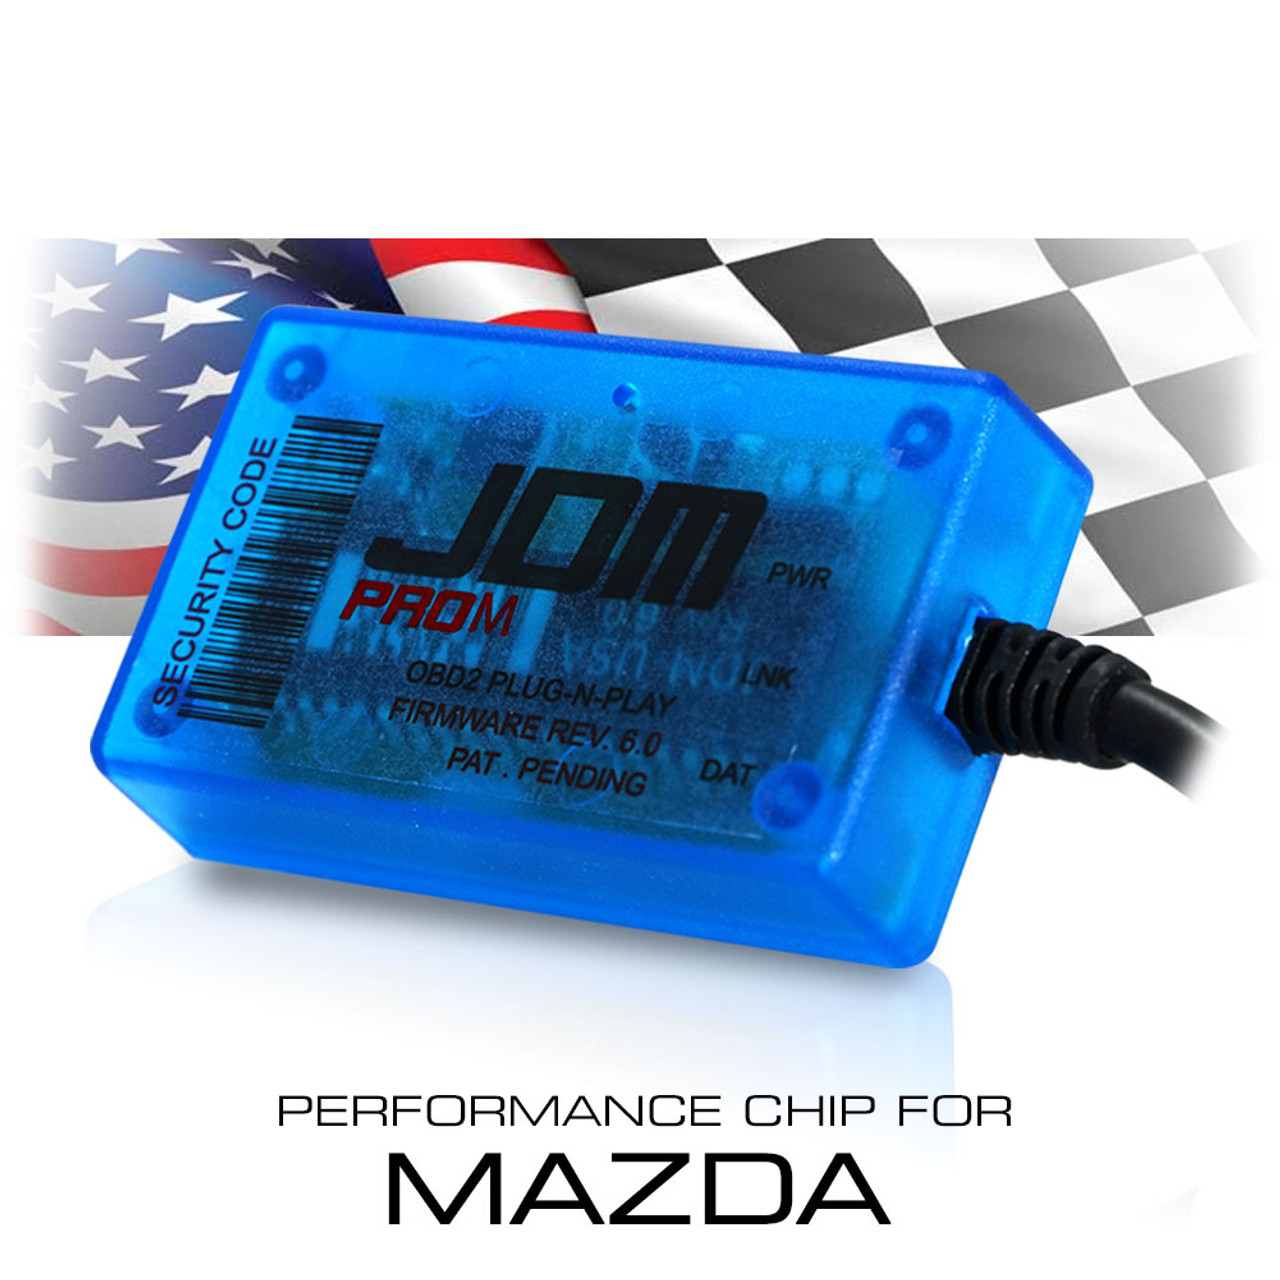 Stage 3 Performance Chip Obdii Module For Mazda Performance Chip Tuning